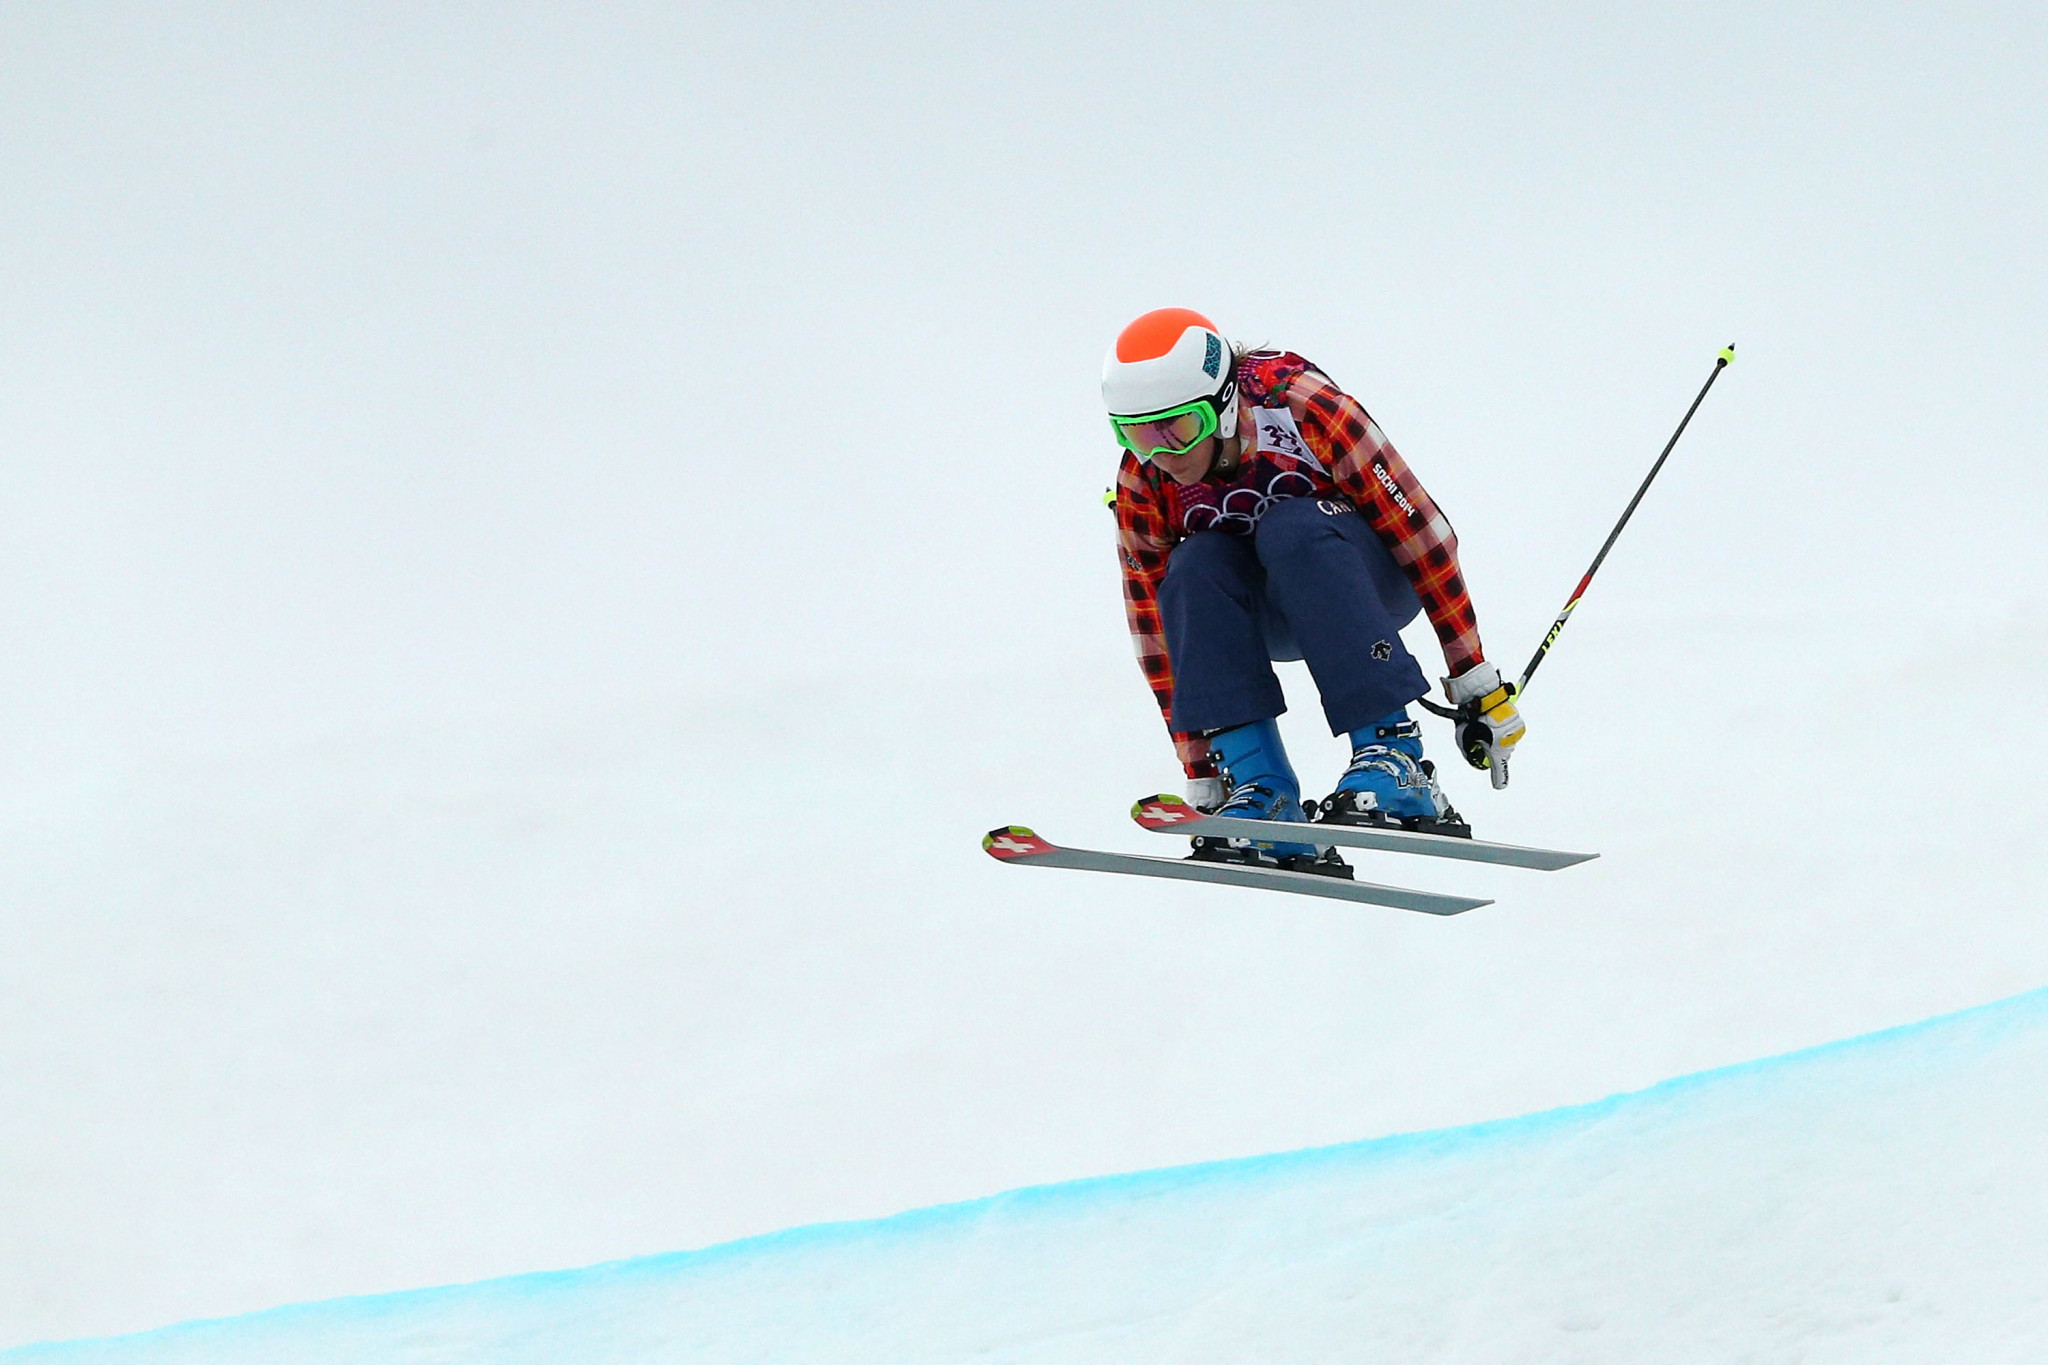 Ski cross athlete Simmerling retires to focus on cycling